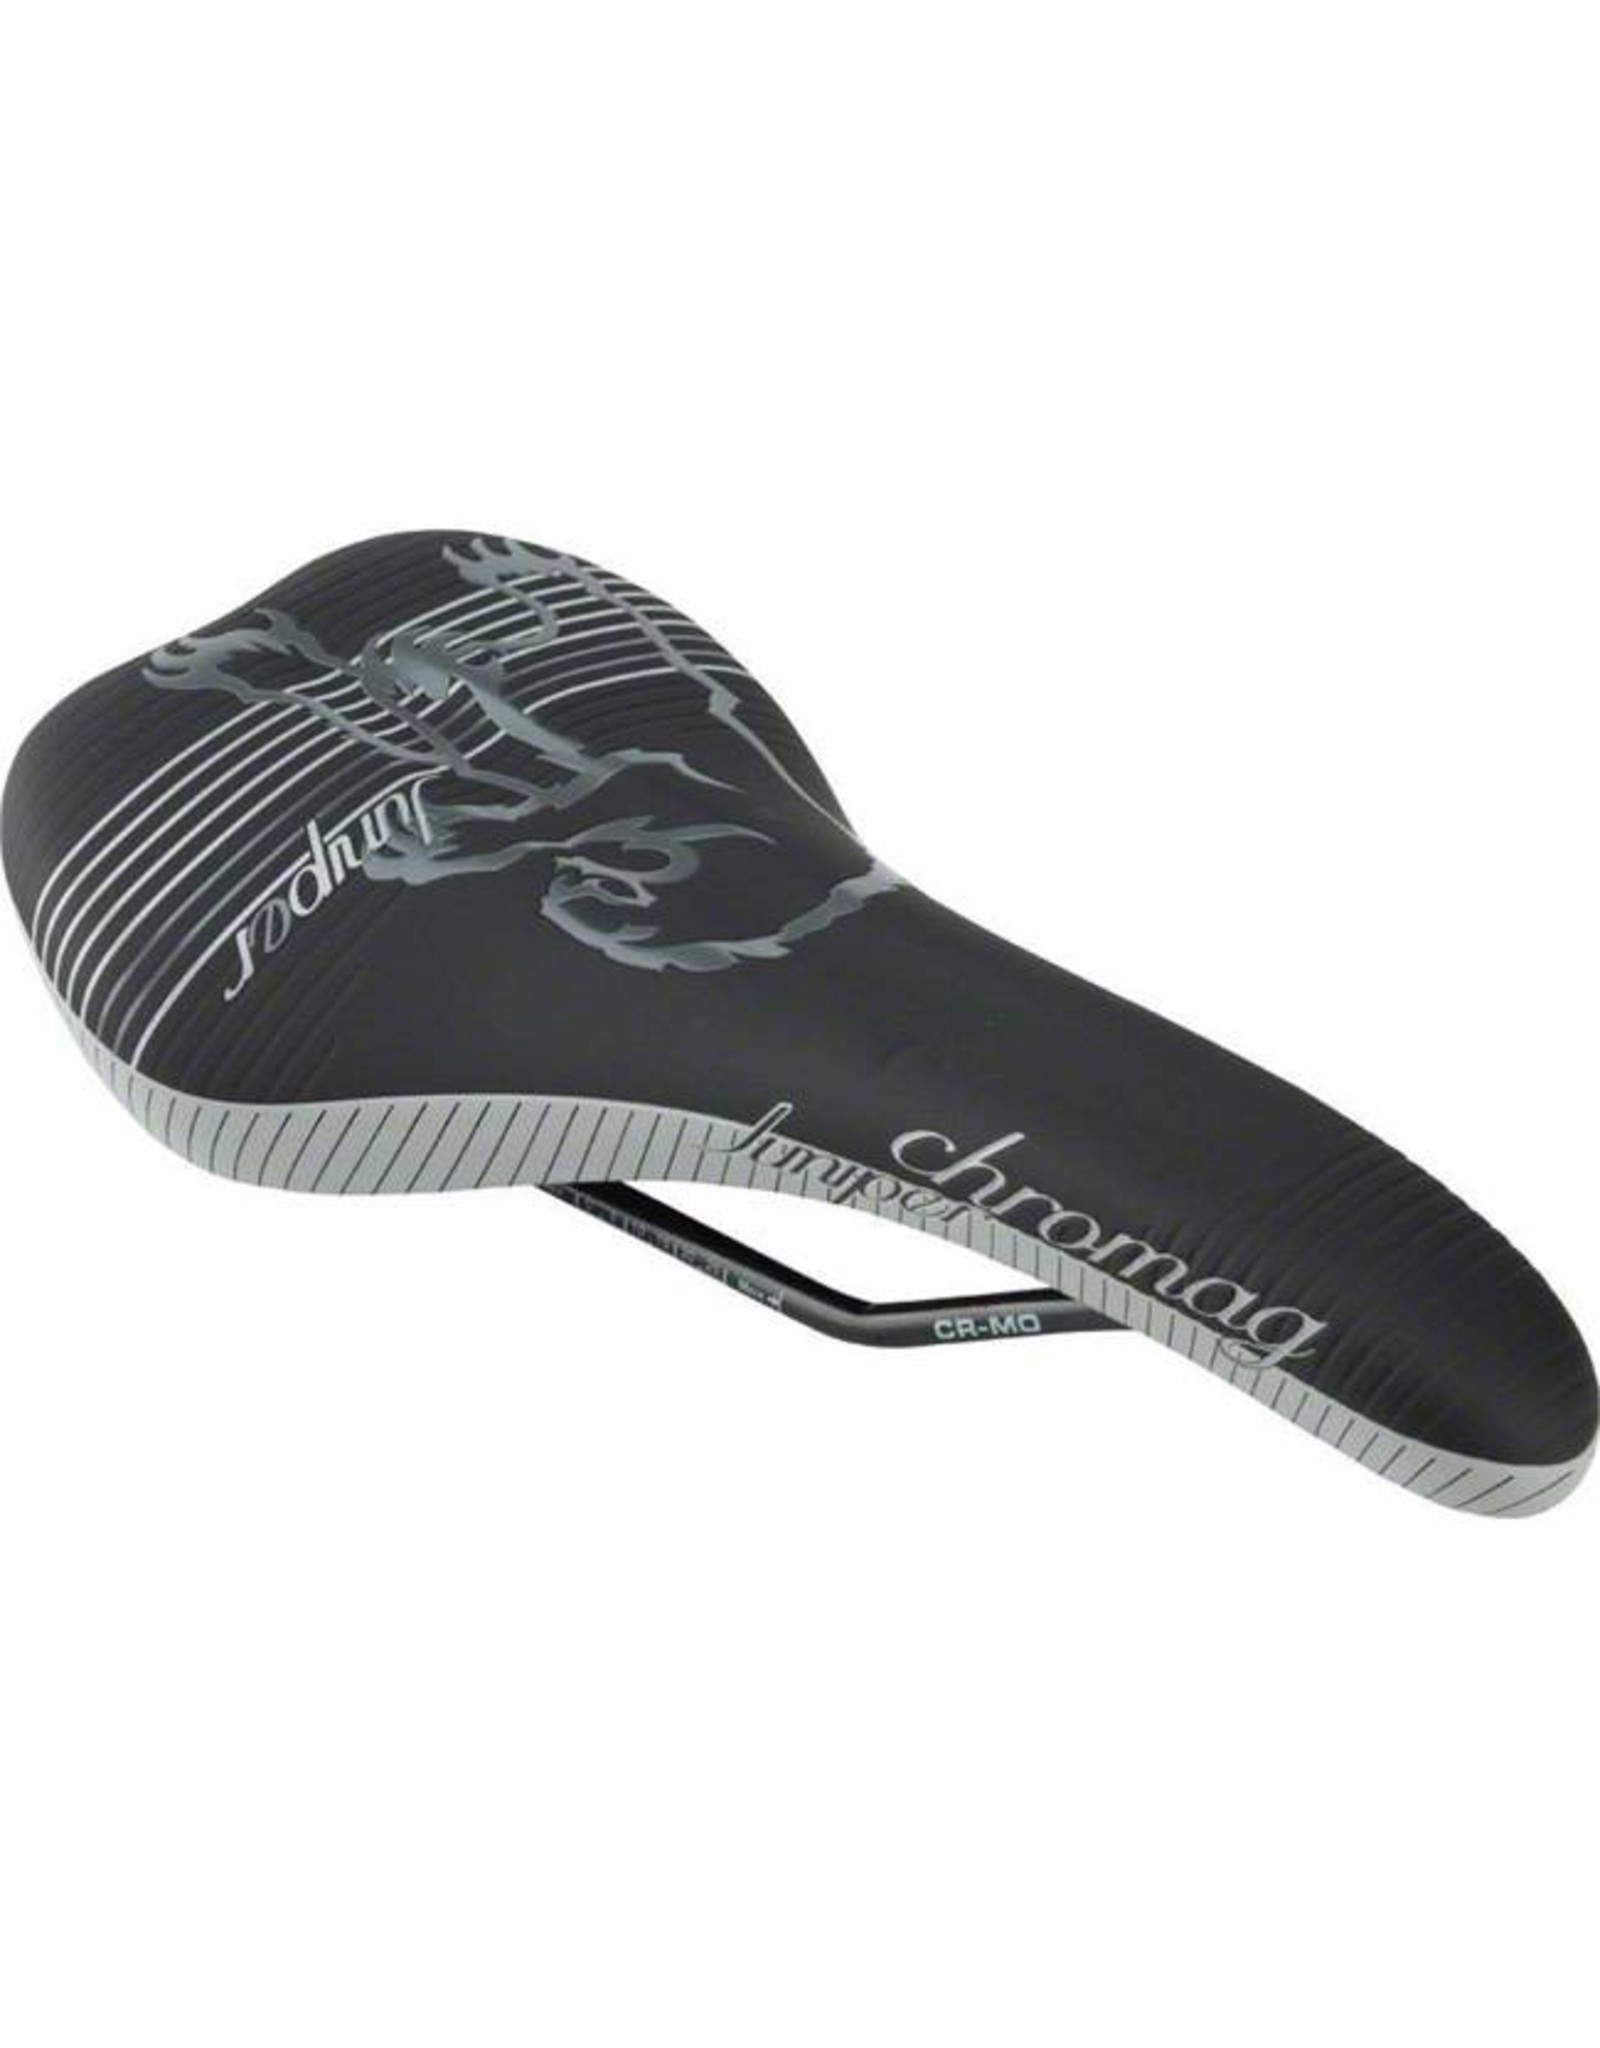 Chromag Womens Juniper Saddle: Synthetic Top, Black and Gray